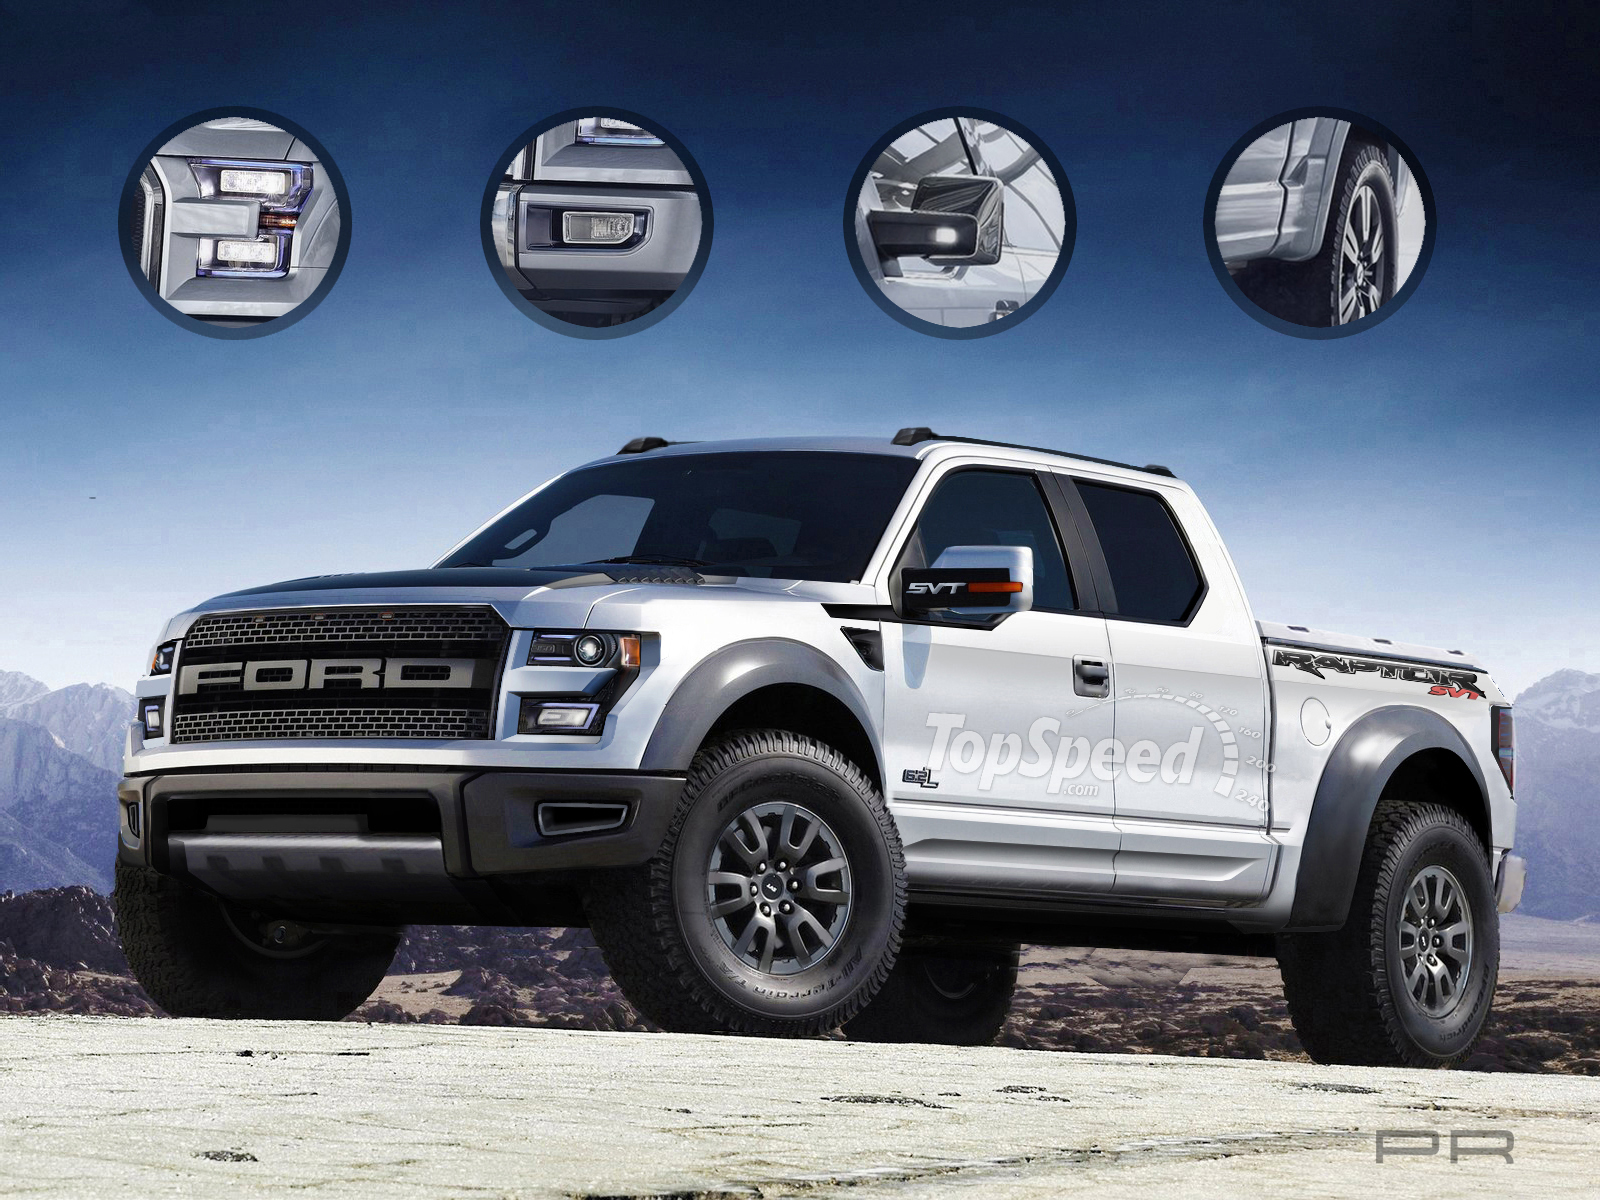 debuts photos supercrew f introduces joe hinrichs cab inspired baja caradvice price dual in raptor detroit new ford